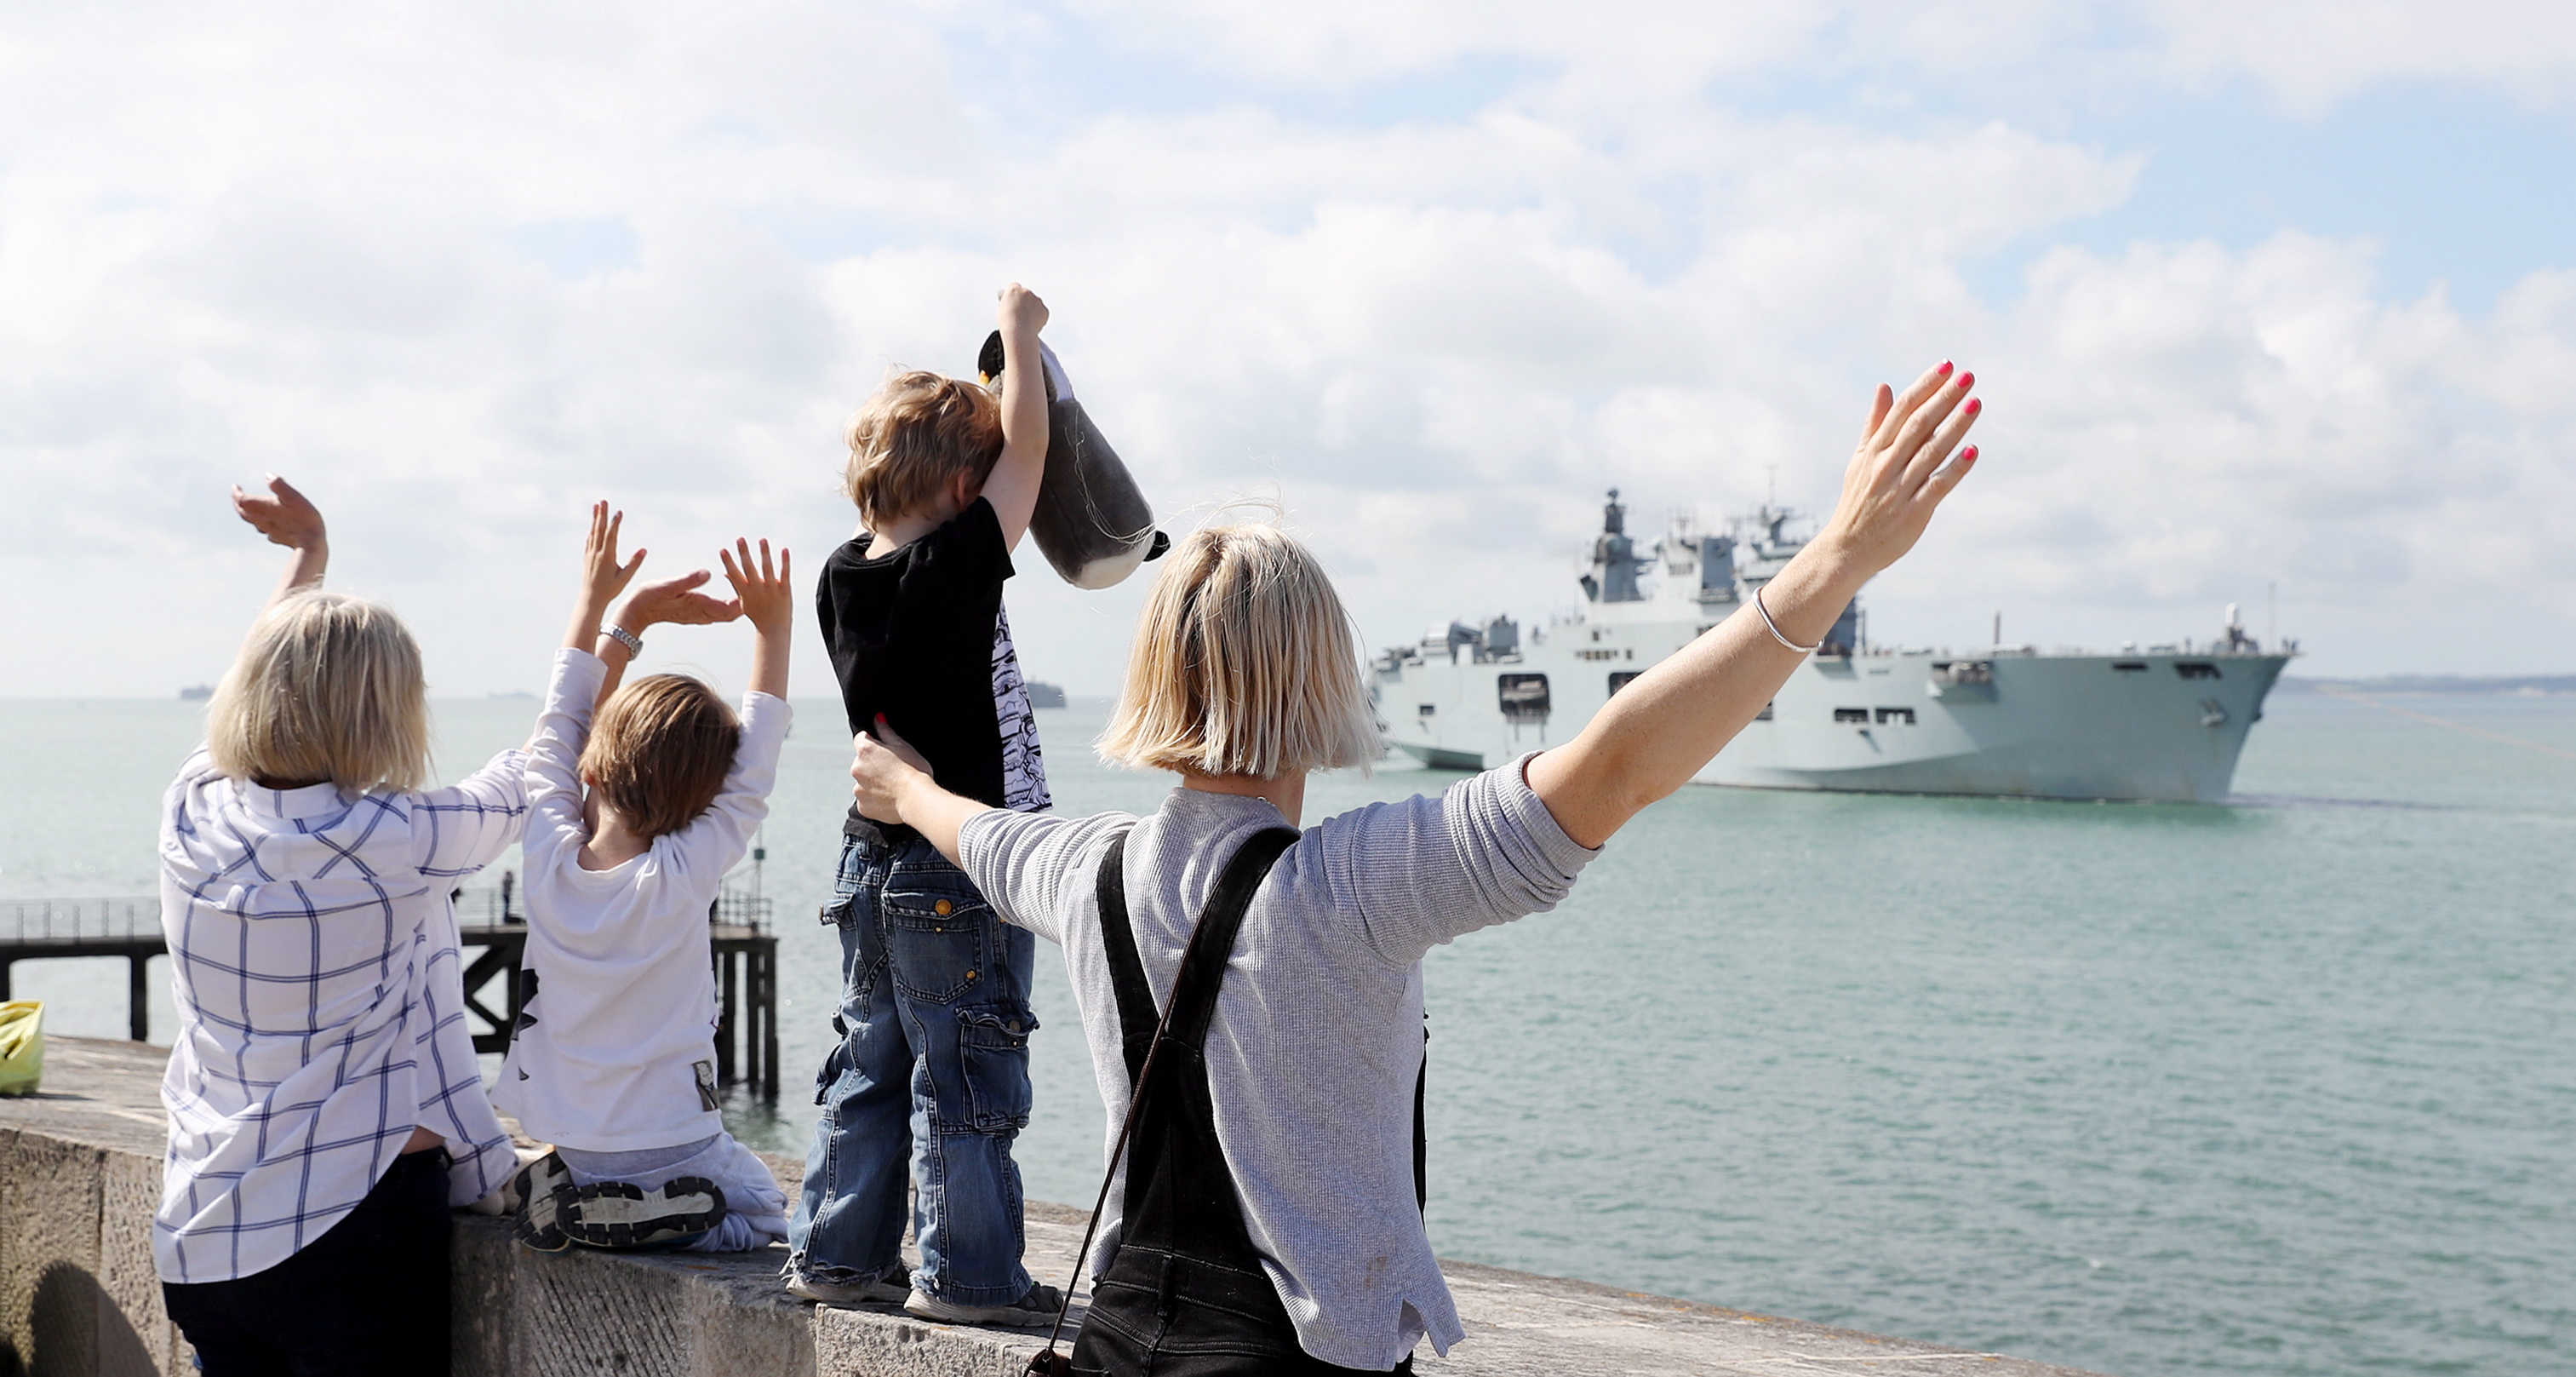 HMS OCEAN VISITS PORTSMOUTH  Pictured - Elizabeth Storton (right), wife of HMS Ocean's Navigator, with sons Olaf, 6, and Toby, 4, welcoming the ship in.  There was the rare sight of Britain's biggest warship passing Portsmouth's famous Round Tower today as HMS Ocean paid a brief visit to the Hampshire naval base.  The helicopter carrier, which led the UK's involvement in international exercises in the Baltic earlier this month, then popped into Kiel to represent the RN at the German city's world-famous sailing regatta, is usually seen in Plymouth.  Her stop-off in Portsmouth this weekend allows her to take on supplies before heading south next week, for an international submarine-warfare exercise, also involving the Merlin helicopters of 814 Naval Air Squadron from Culdrose.  The exercise is intended as a 'stepping stone' to help the Royal Navy determine how it can protect its future aircraft carriers HMS Queen Elizabeth and Prince of Wales from submarine attack.